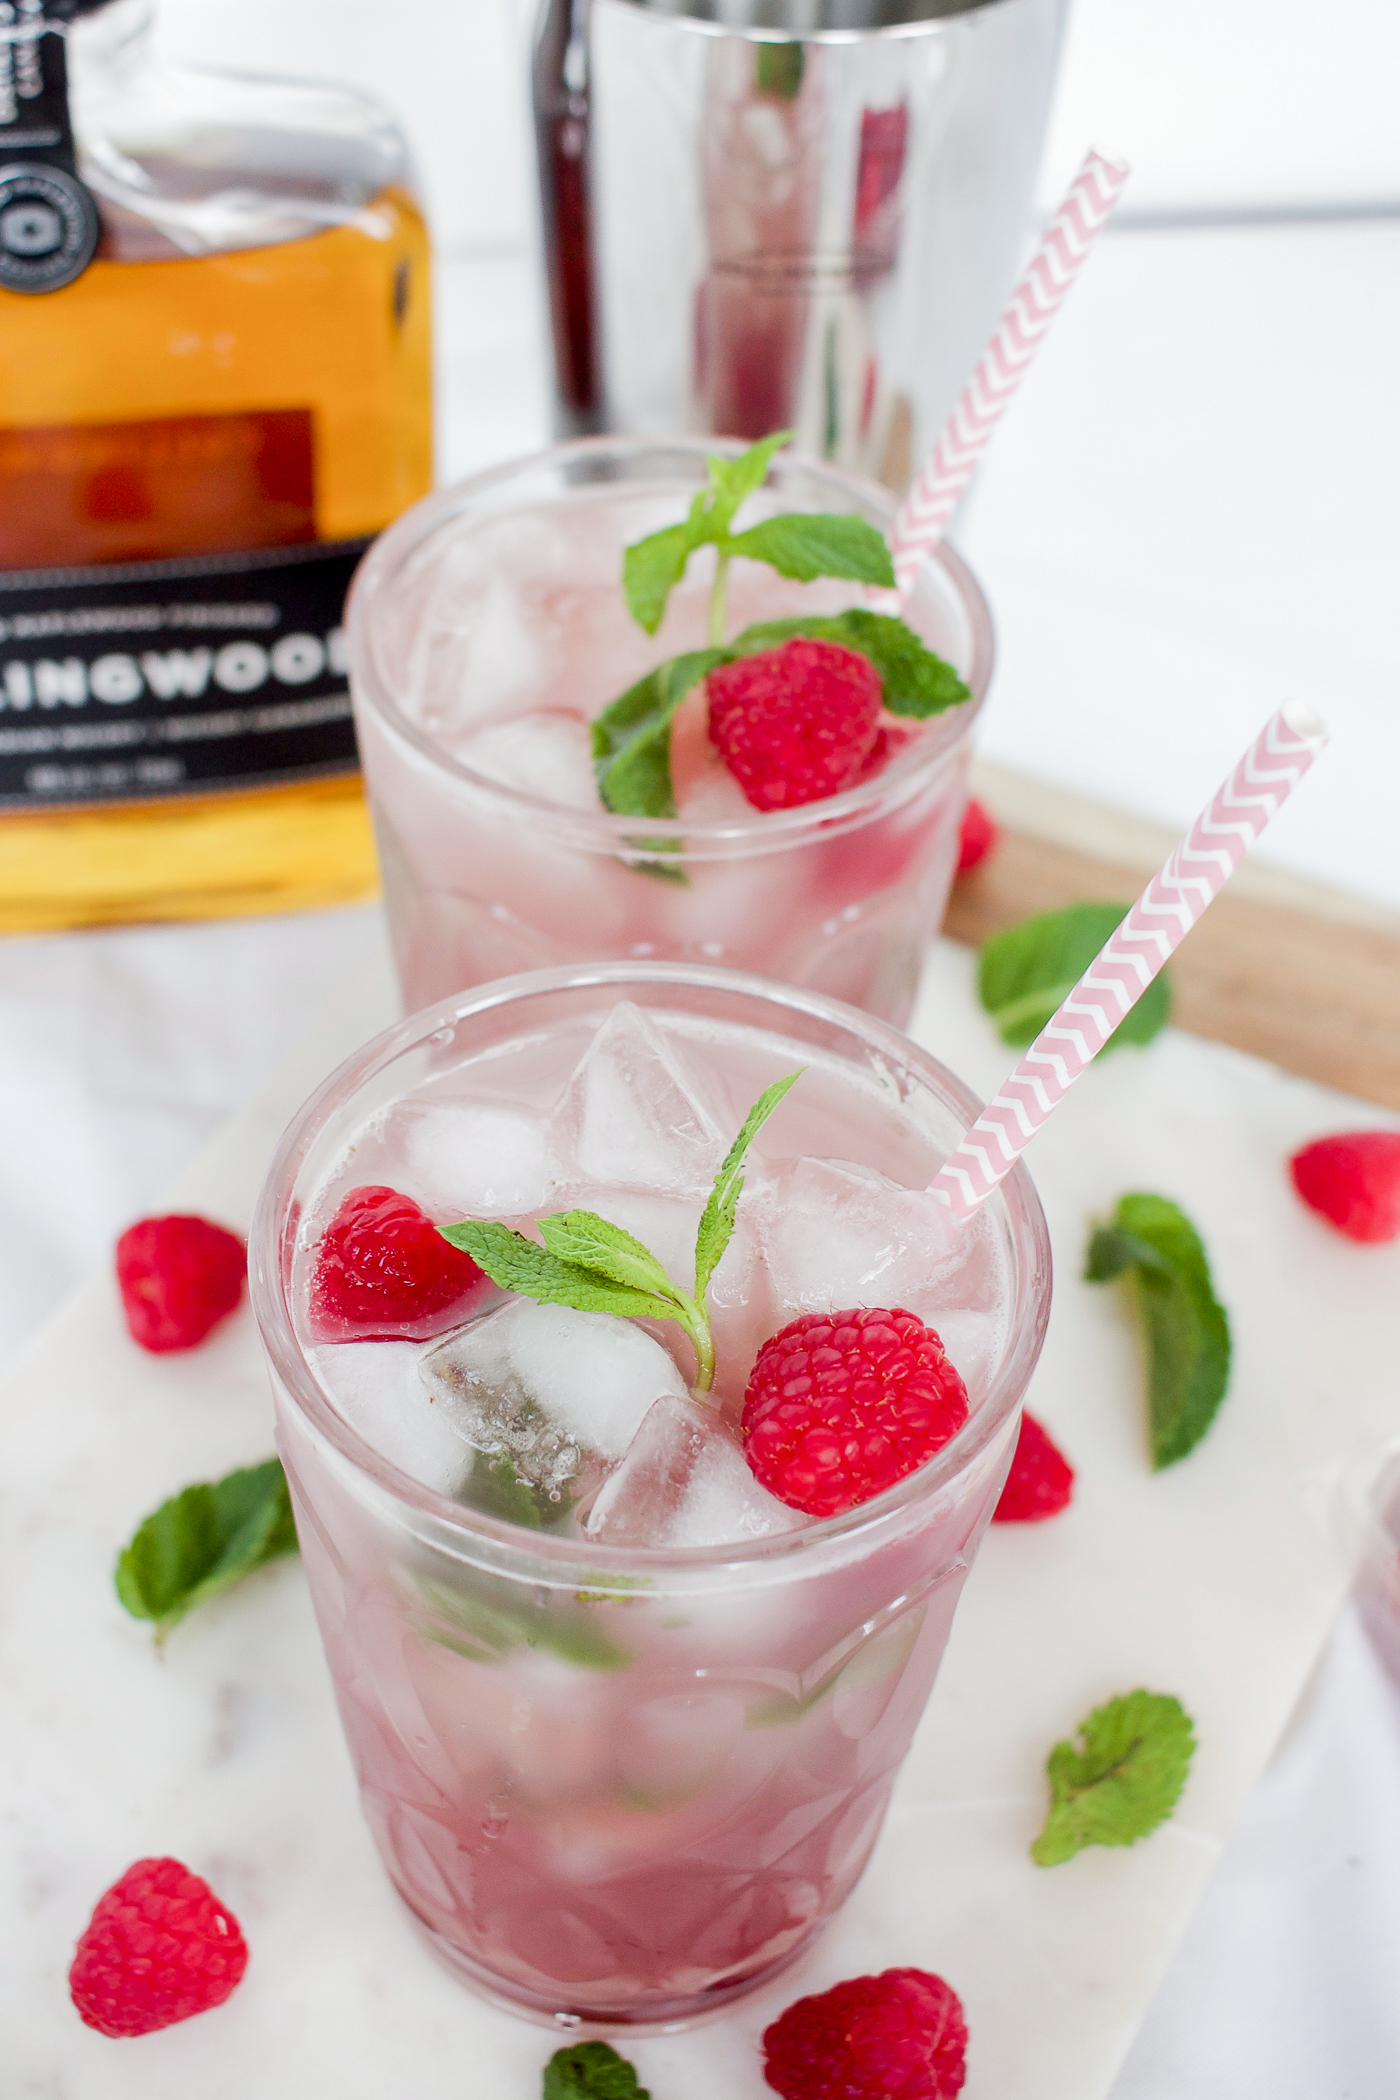 This is a raspberry and mint cocktail recipe, made with whiskey